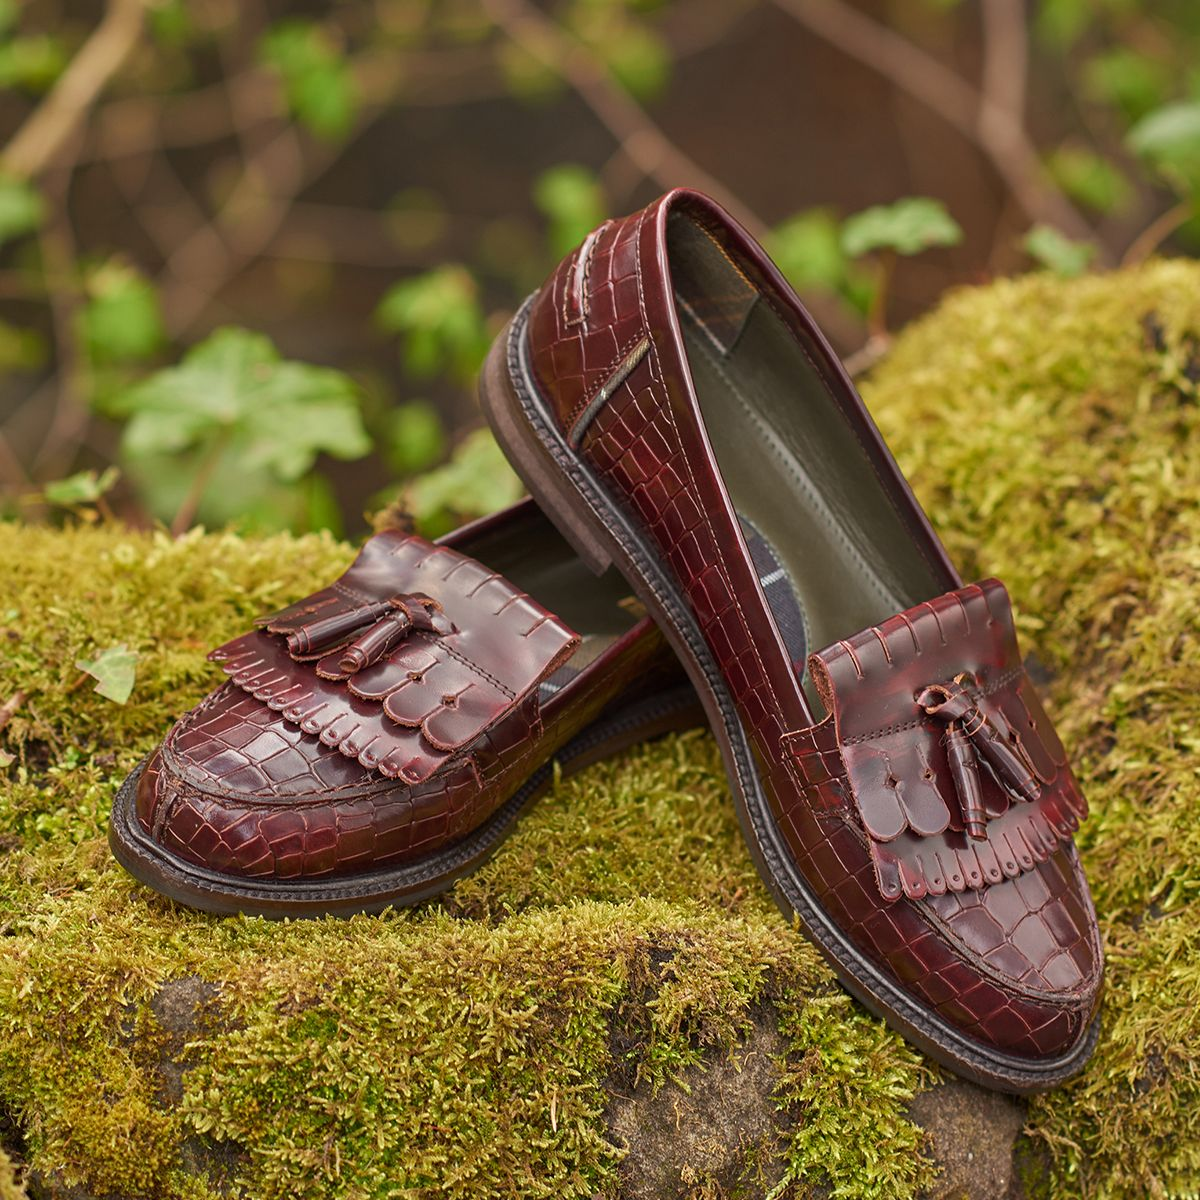 32053403726d The Barbour Olivia Loafer is a timeless style with a leather upper ...